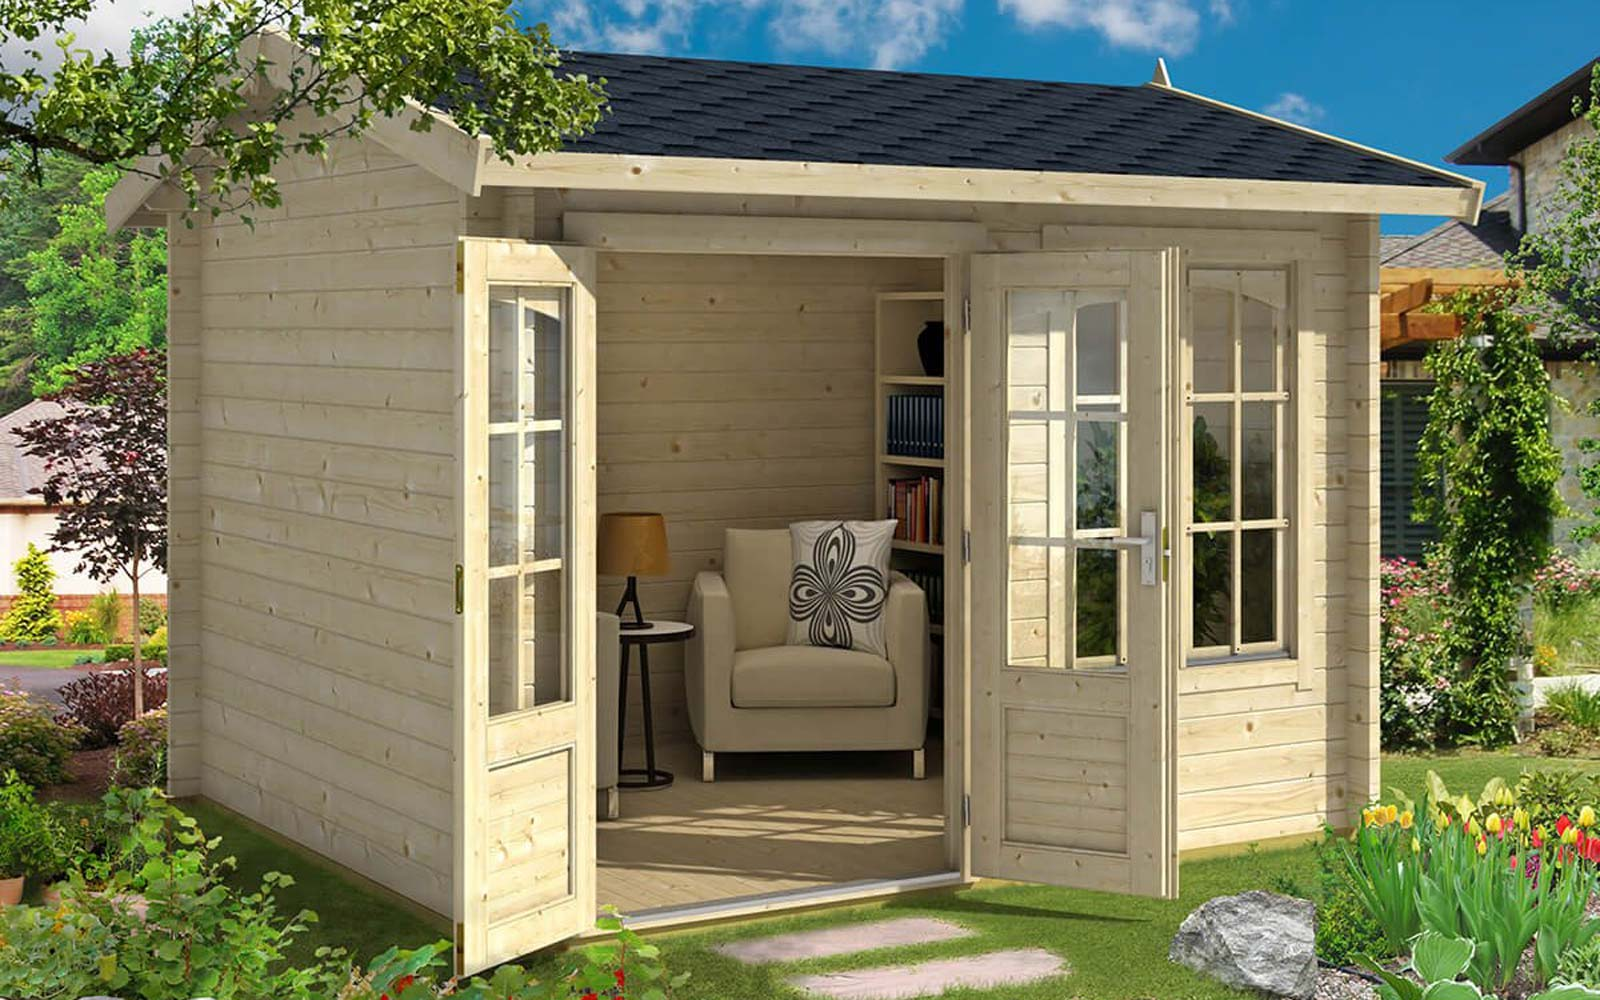 You Really Can Buy a Tiny House on Amazon for $3,000 — Here Are 12 Easy DIY Kits to Shop Now